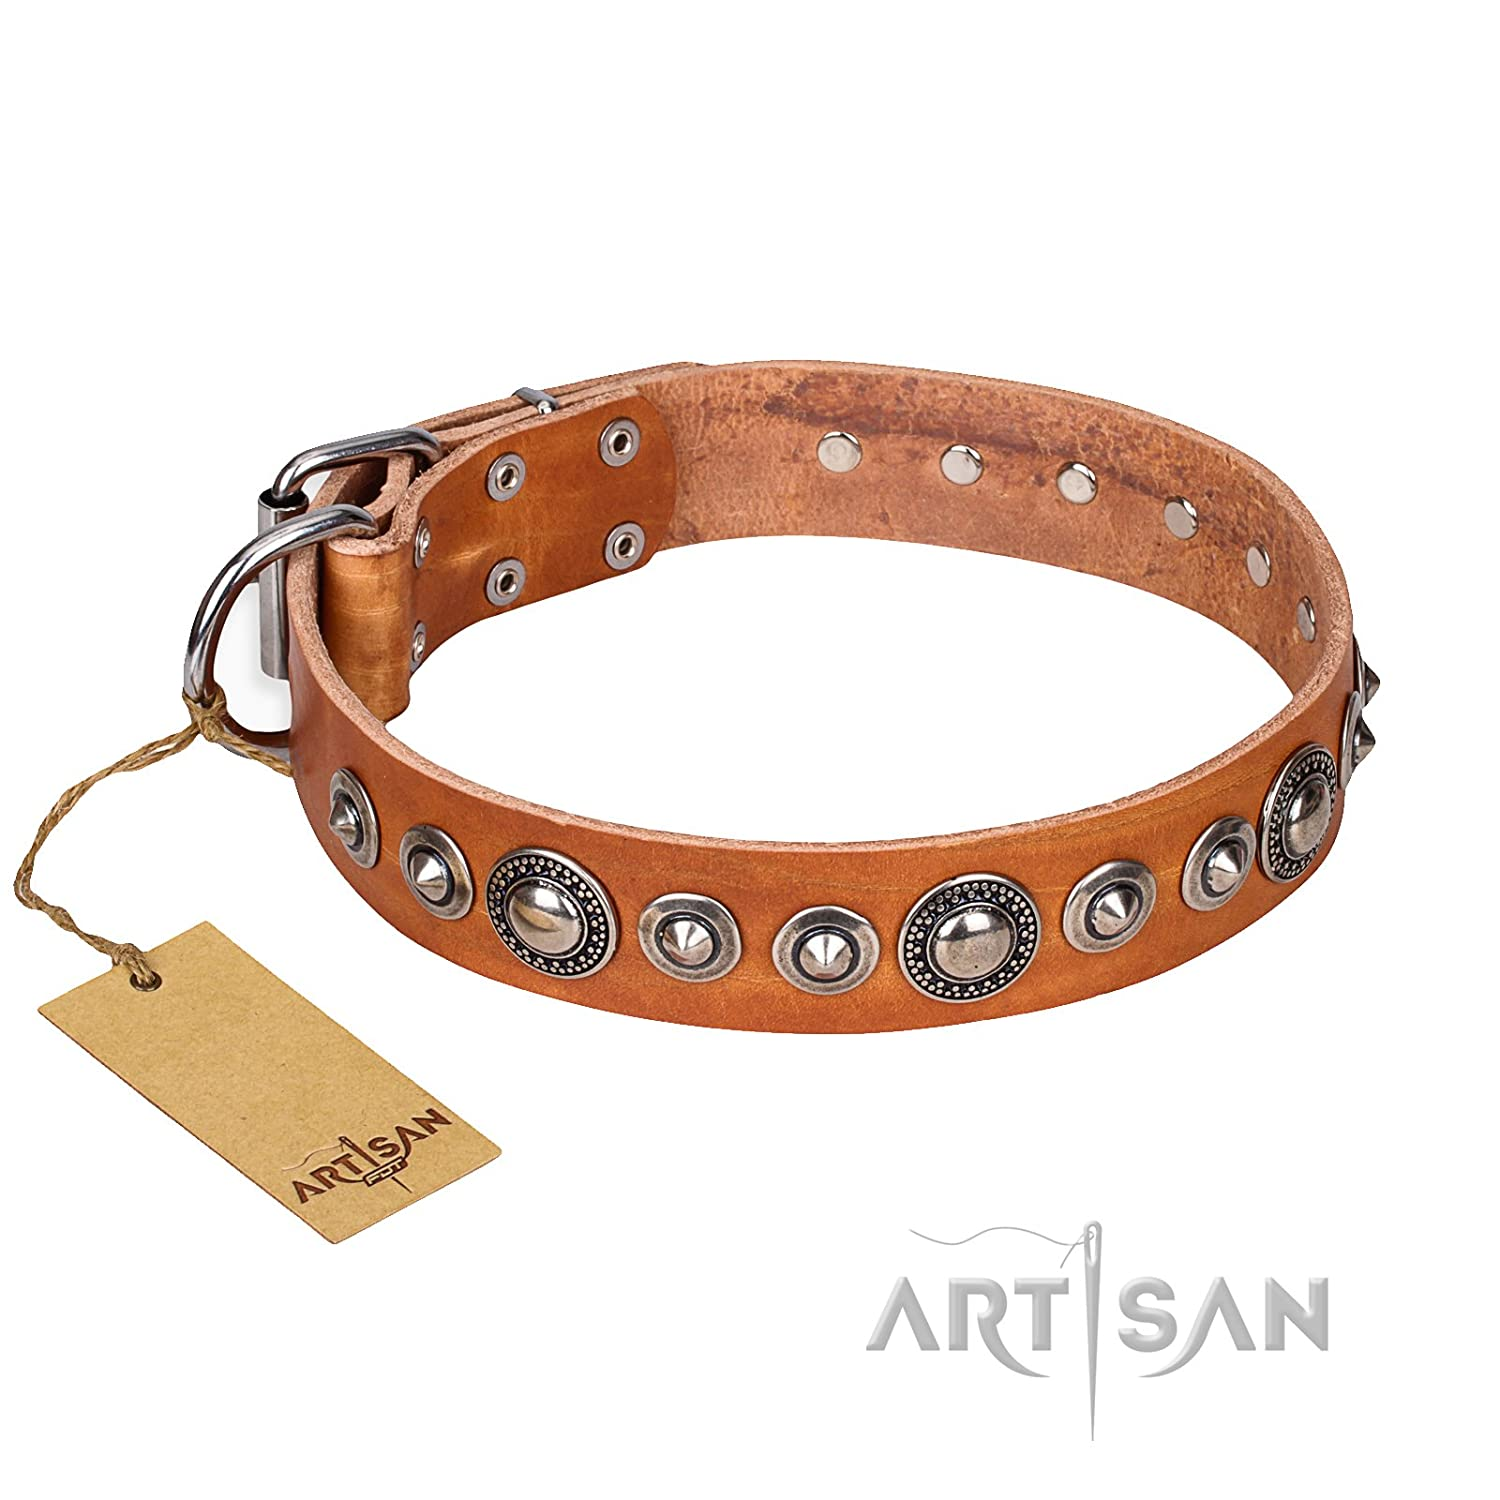 Fits for 19 inch (48cm) dog's neck size FDT Artisan 19 inch Tan Leather Dog Collar with Old Silver Like Decorations Splendid Shields